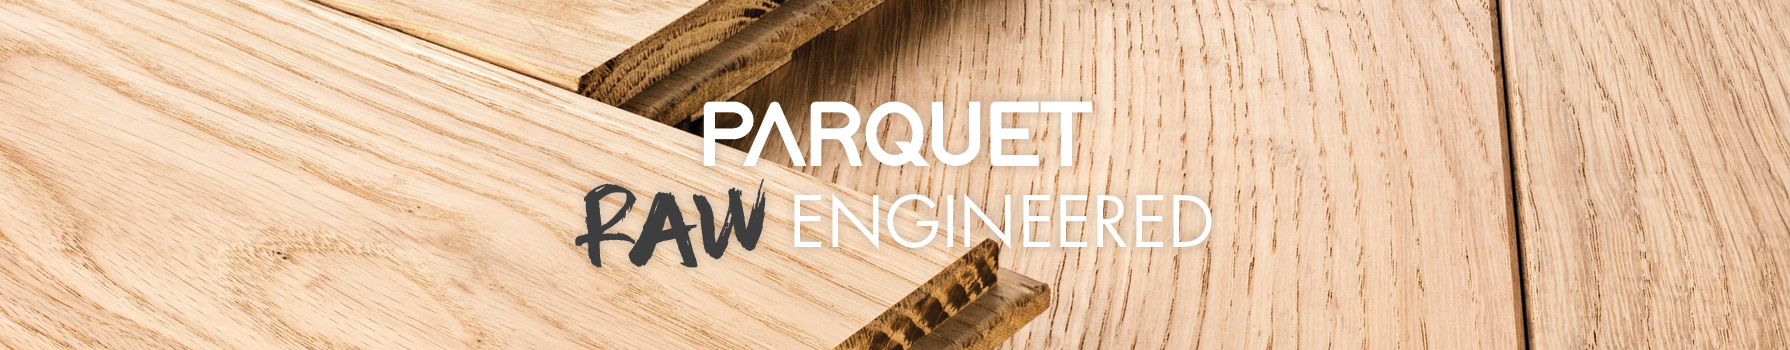 We Love Parquet Raw Engineered Flooring